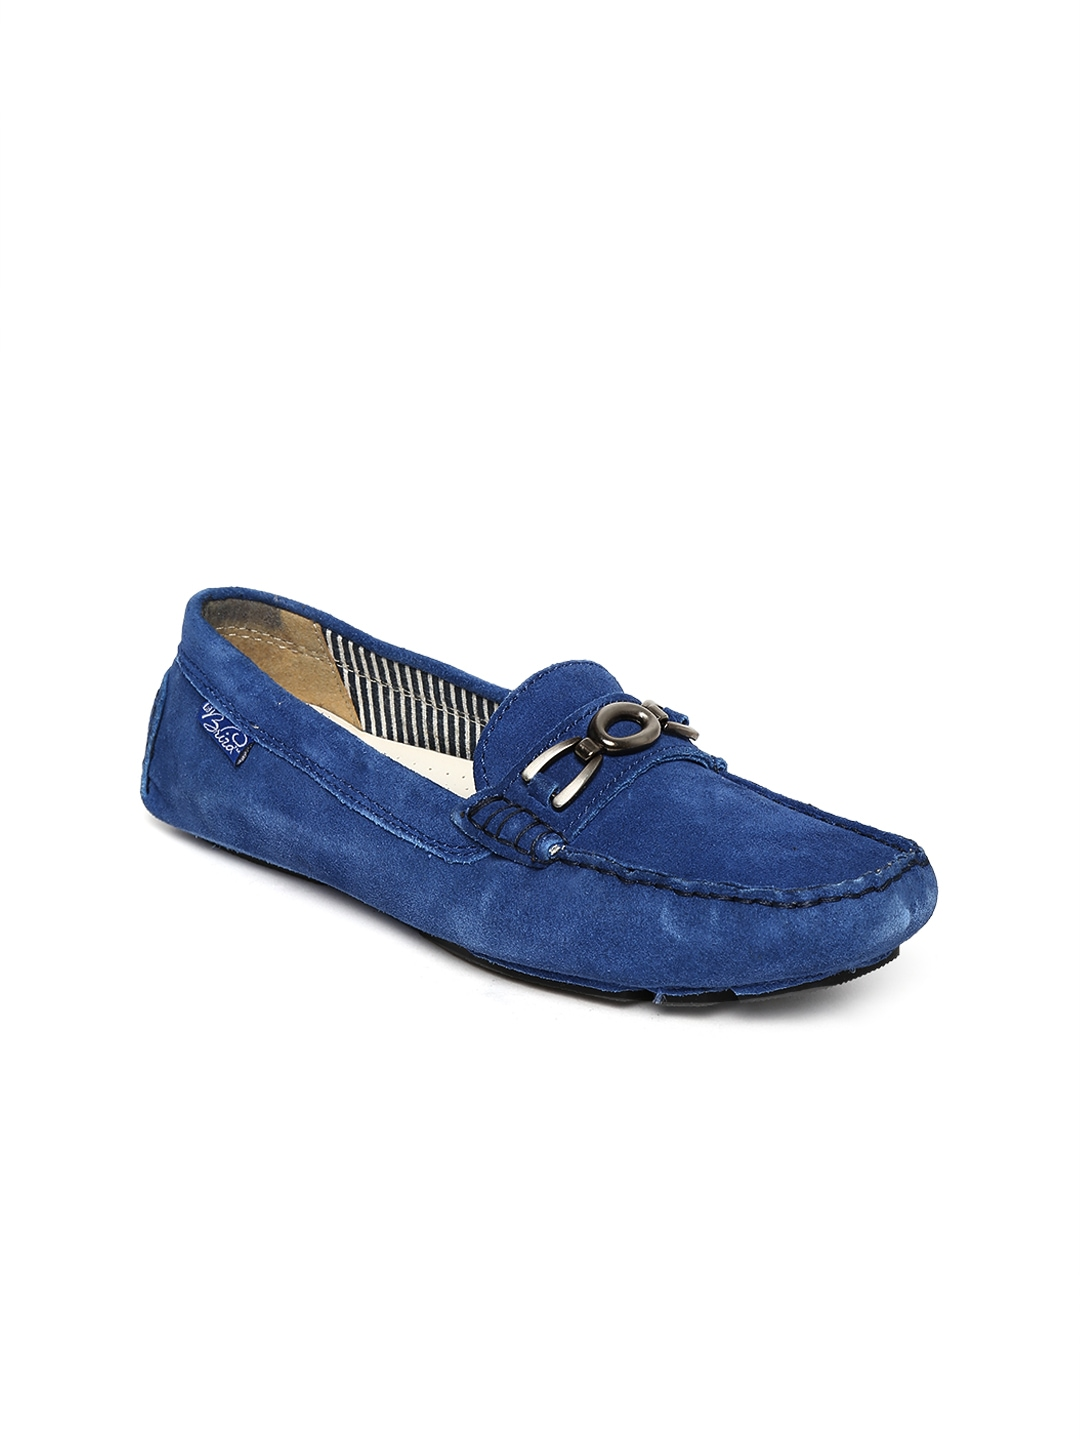 Mens Loafers Men's Loafers The Loafer is the archetype of the casual shoe - easy to wear, comfortable to use, and effortlessly stylish in all its many forms from the Weejun to the Penny Loafer to the Butterfly Loafer, the Pump Loafer and the Kilty Loafer.